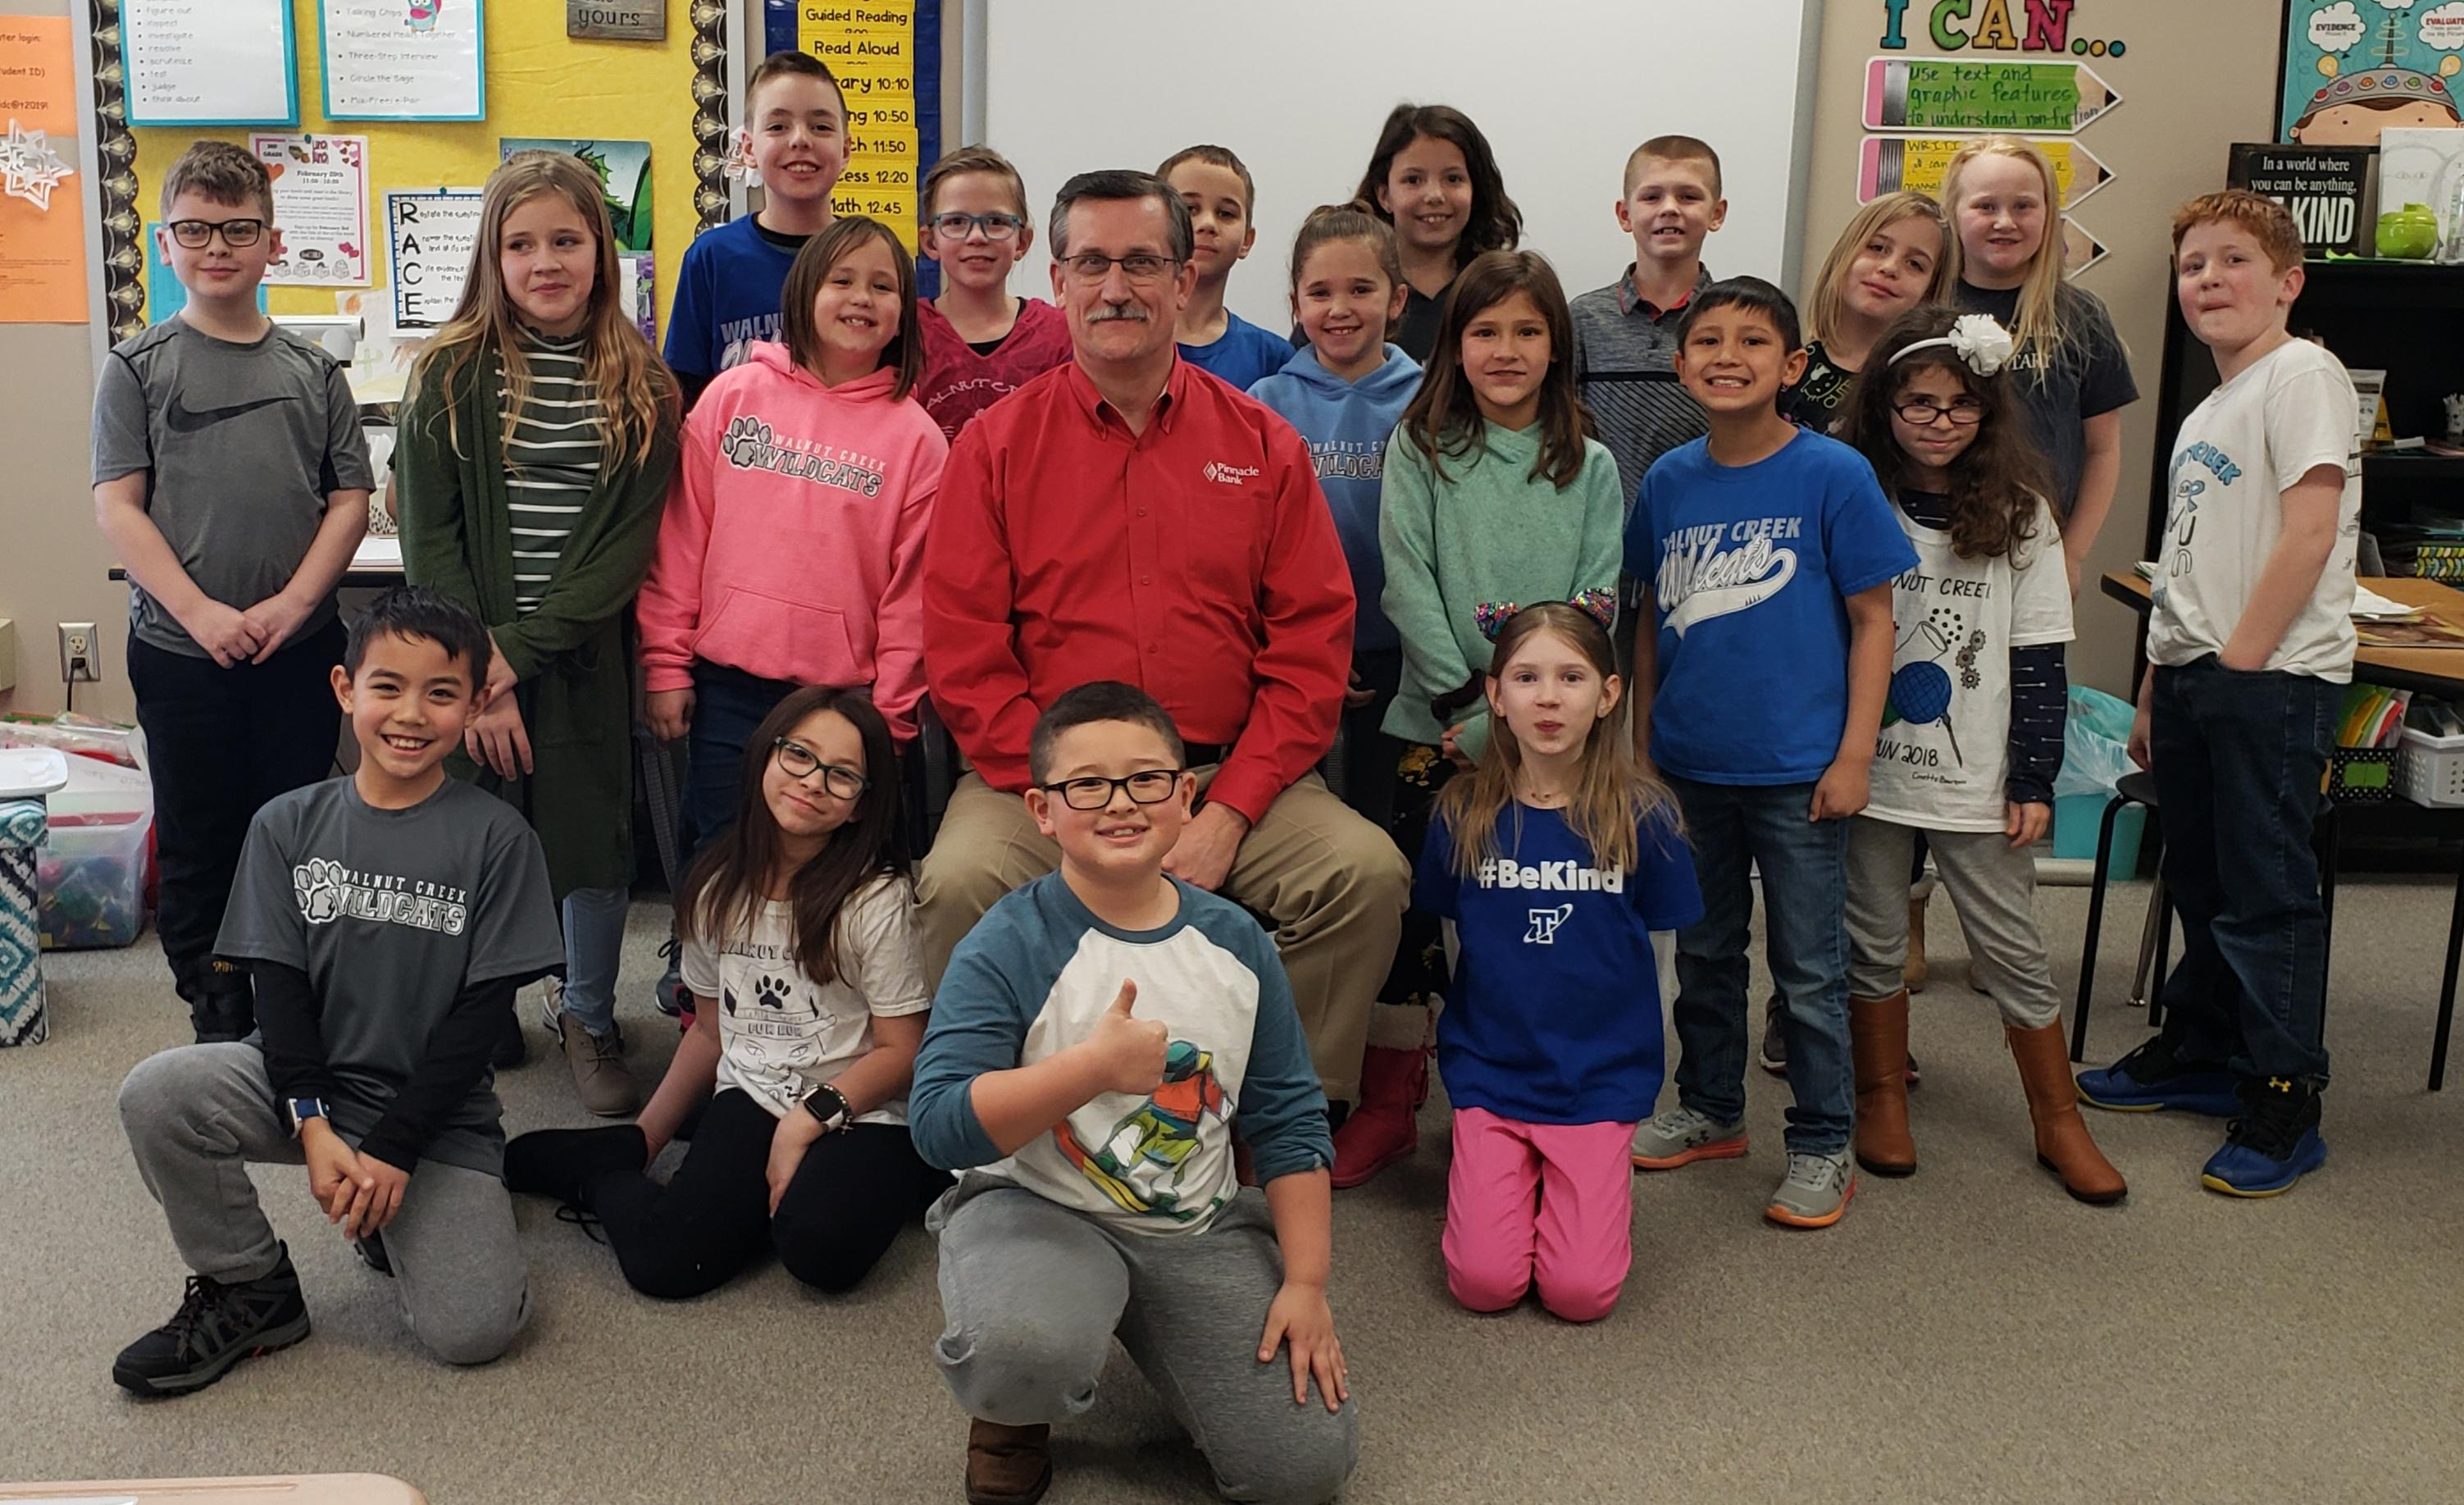 Papillion mayor visits Walnut Creek Elementary classroom